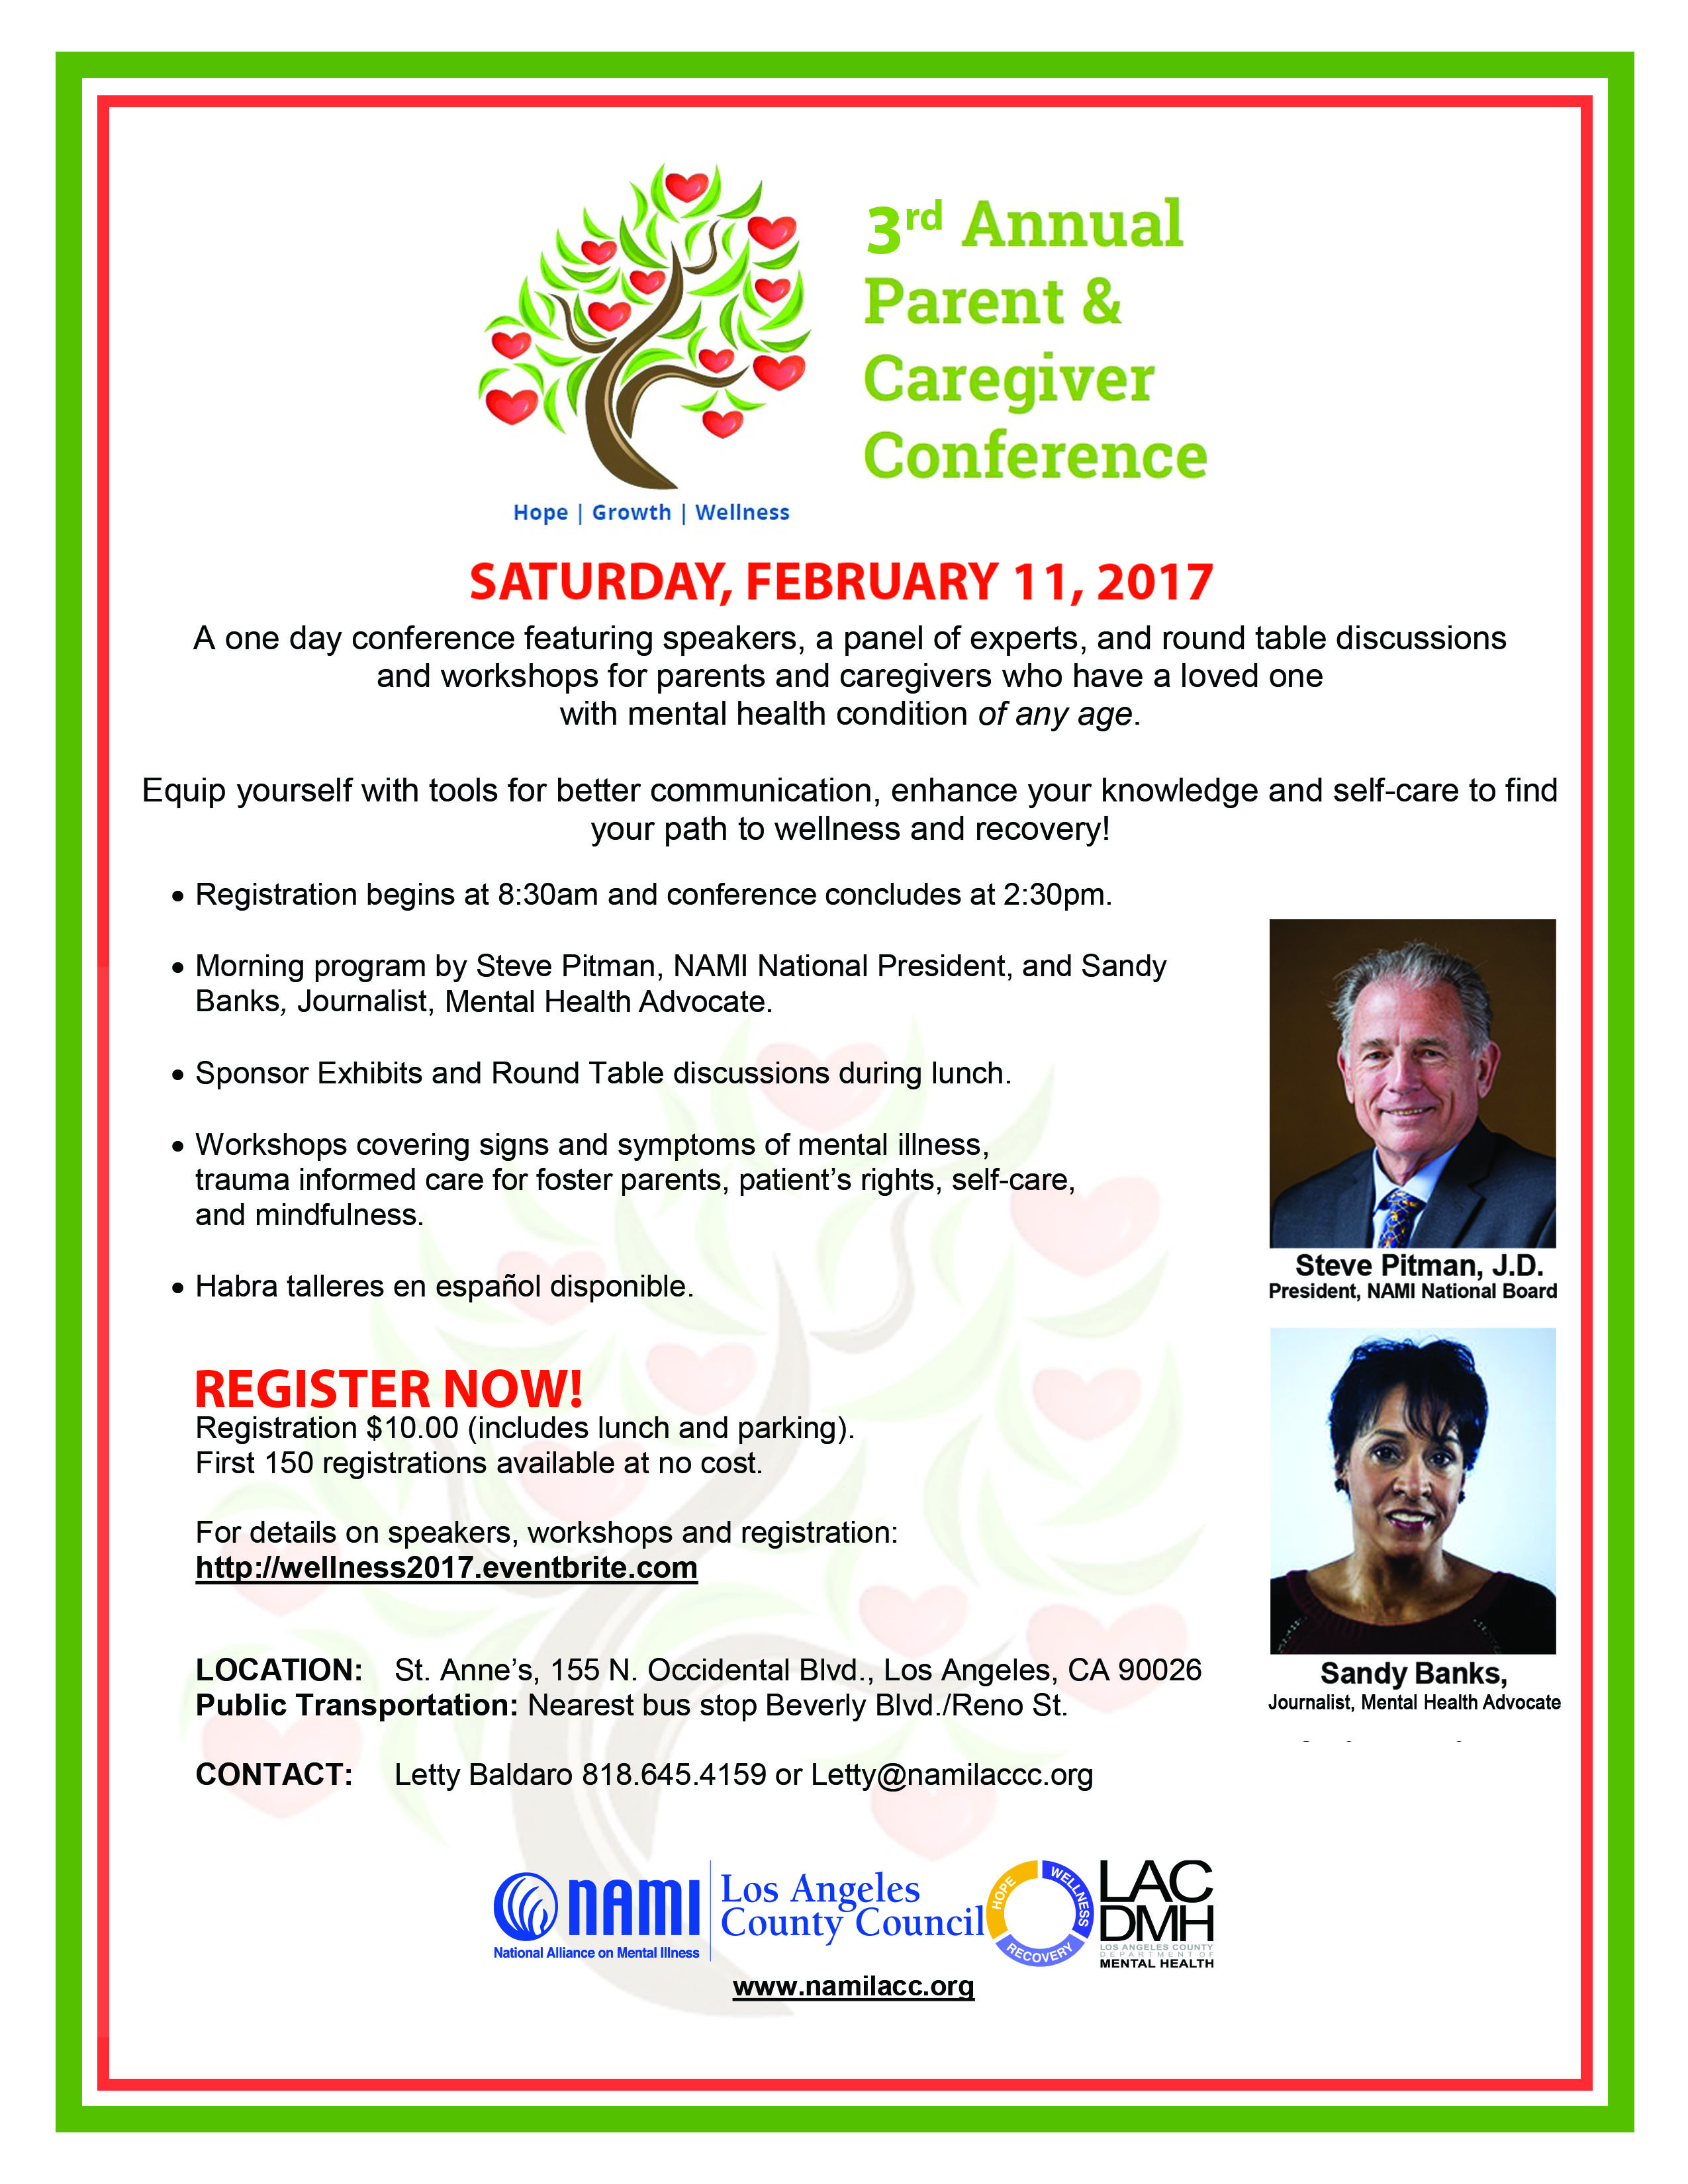 3rd Annual Parent & Caregiver Conference Saturday February 11, 2016